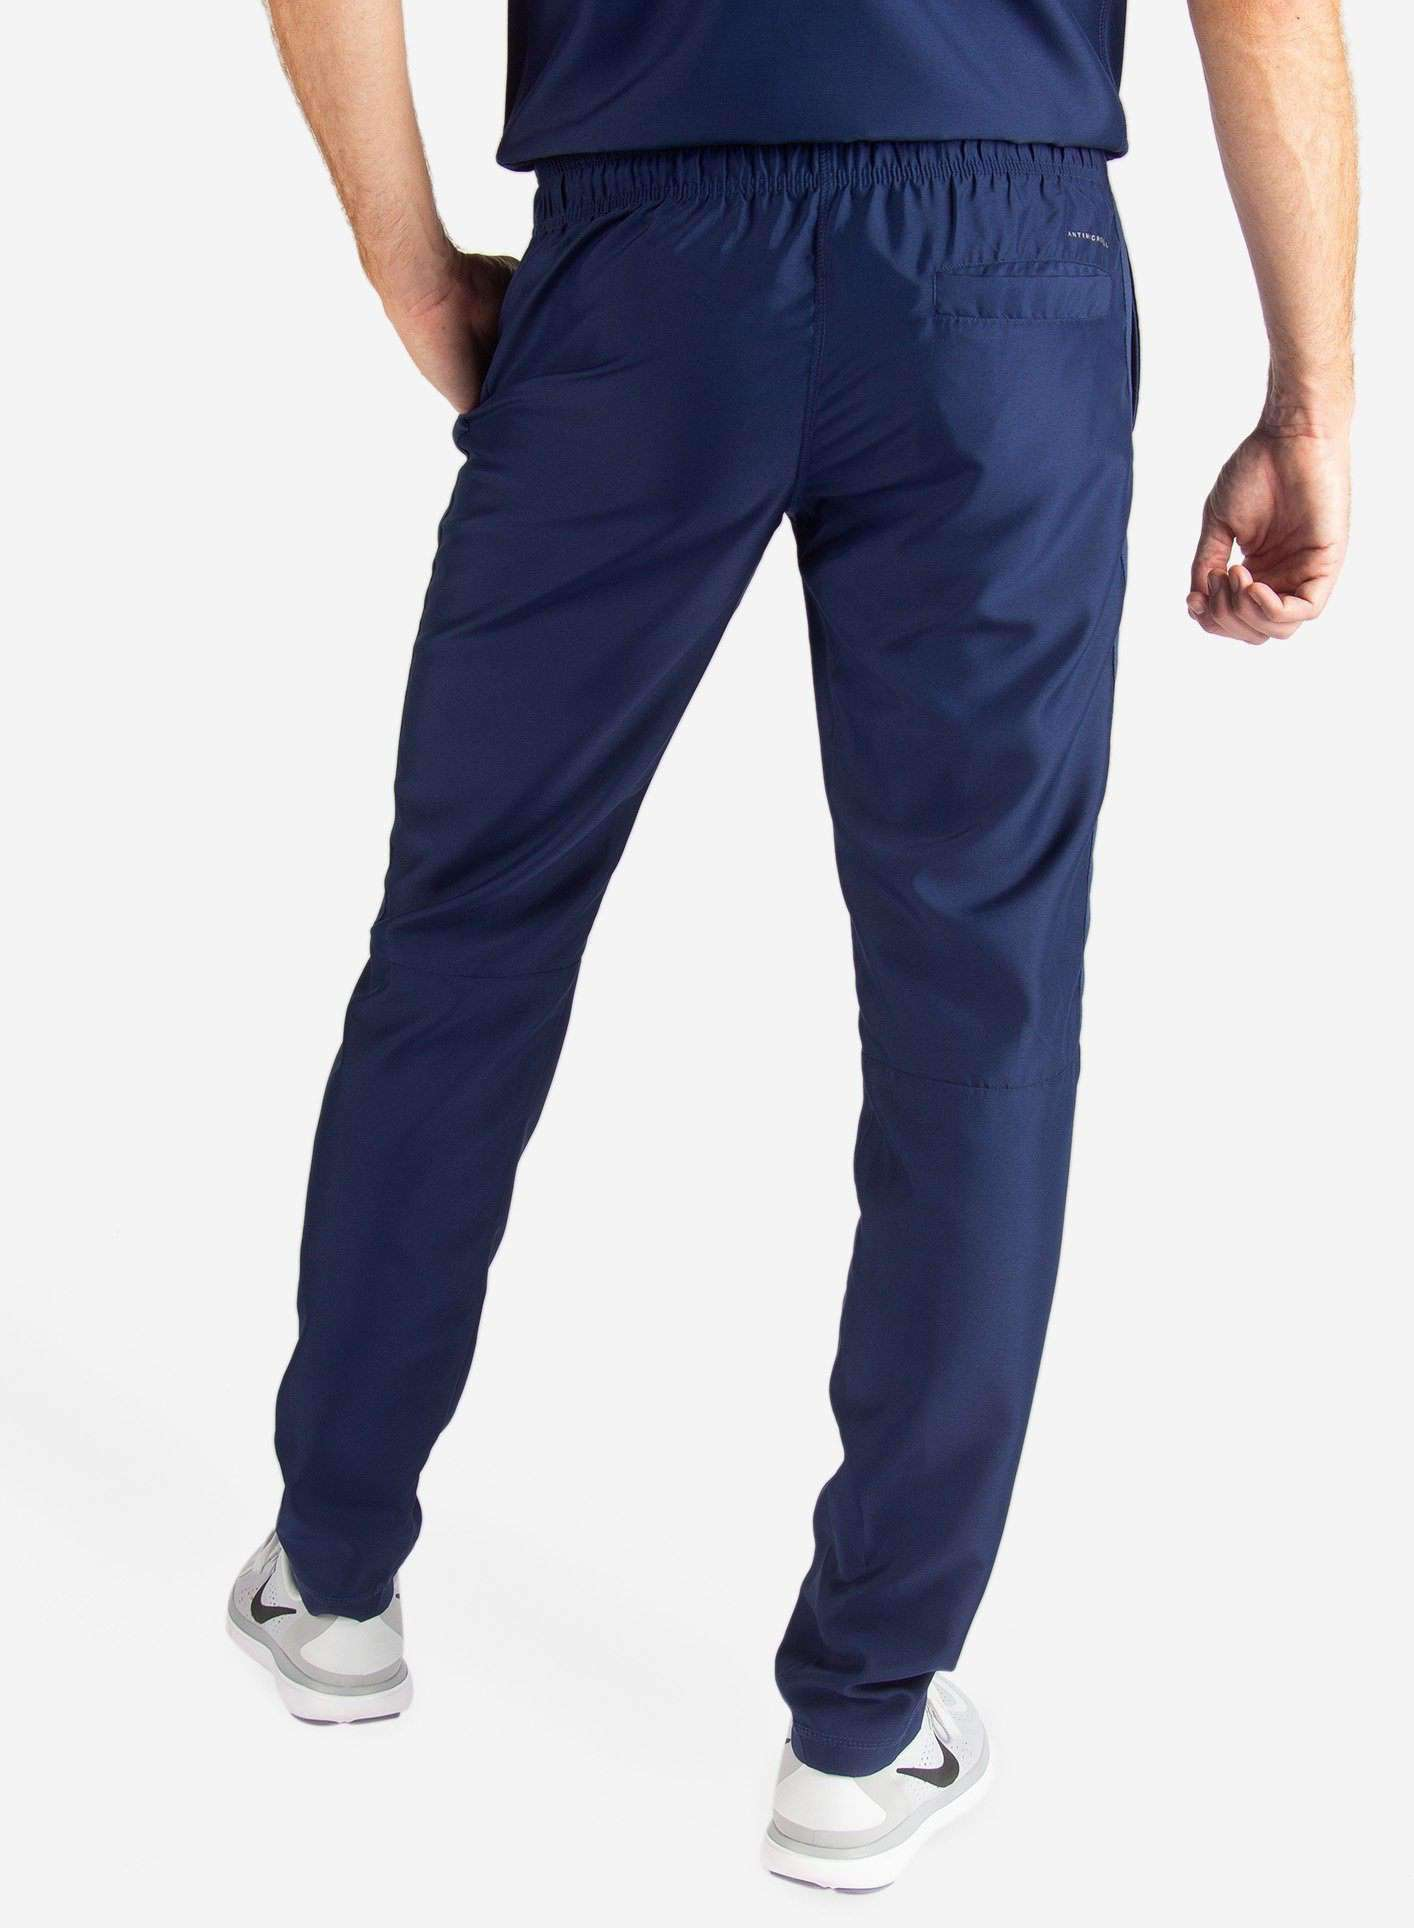 Men's Slim Fit Scrub Pants in Navy Blue Back View